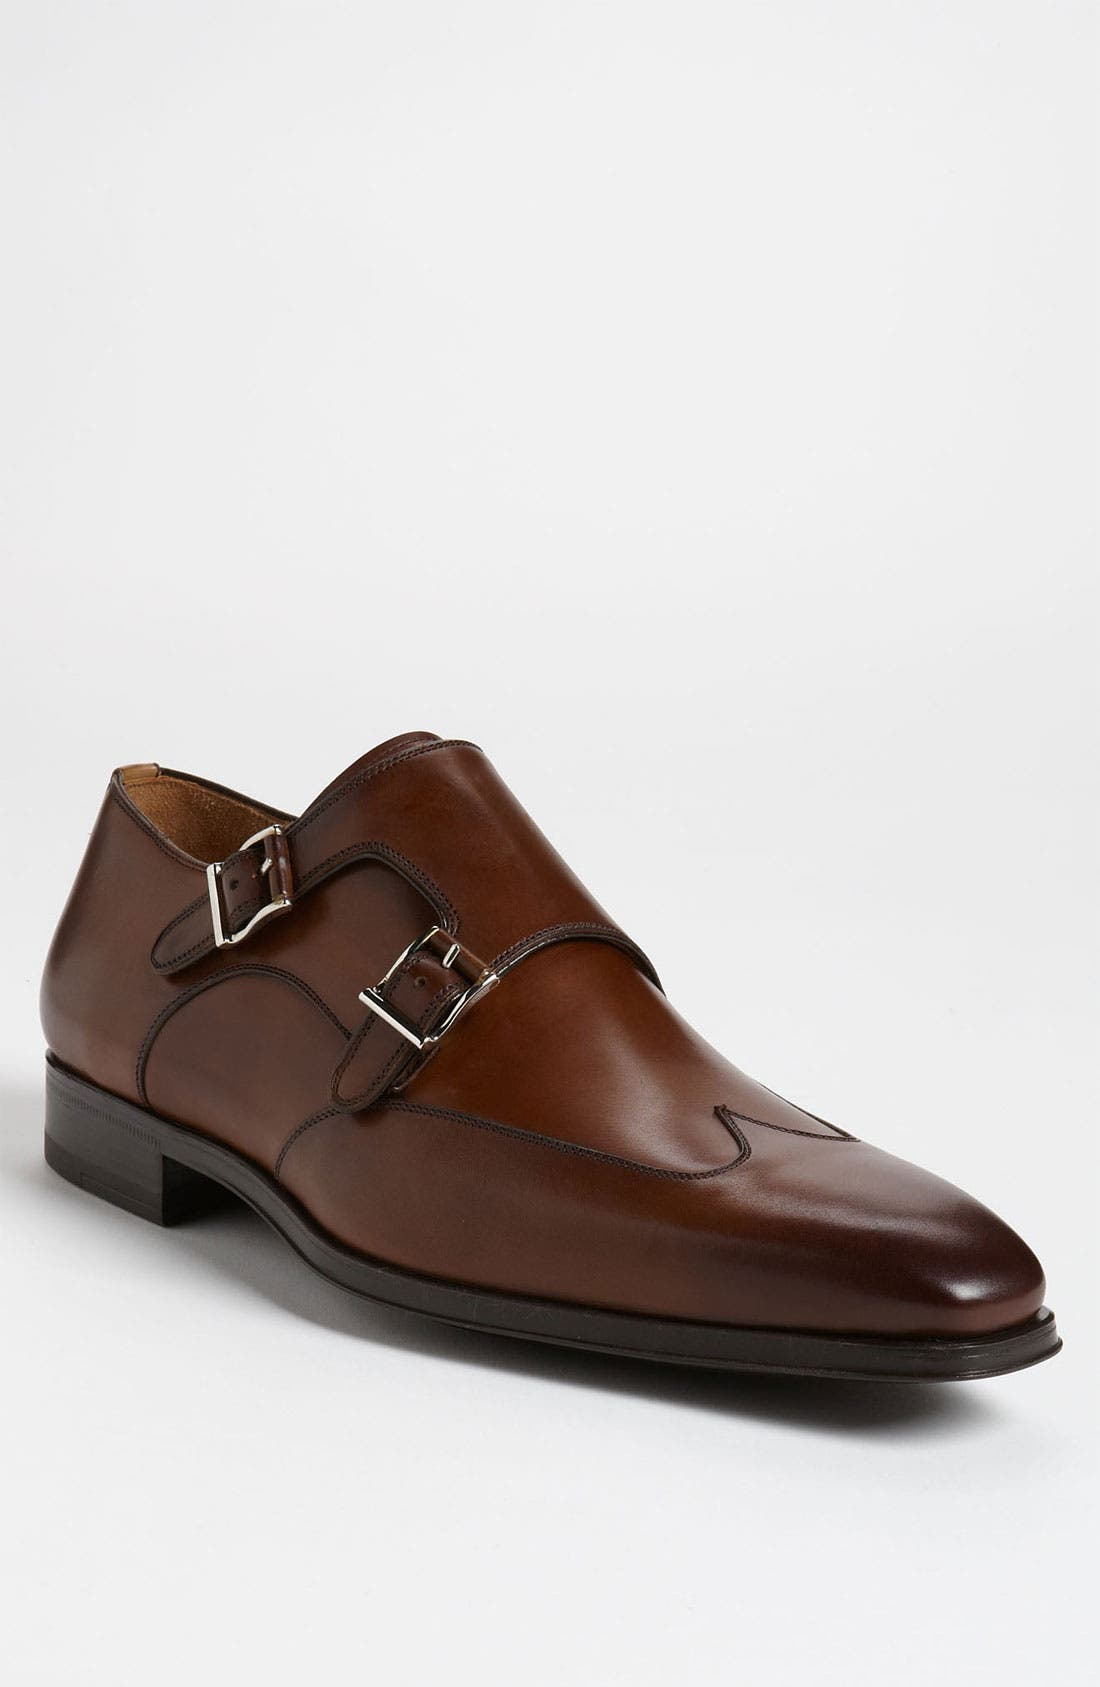 Alternate Image 1 Selected - Magnanni 'Claudio' Double Monk Strap Wingtip Slip-On